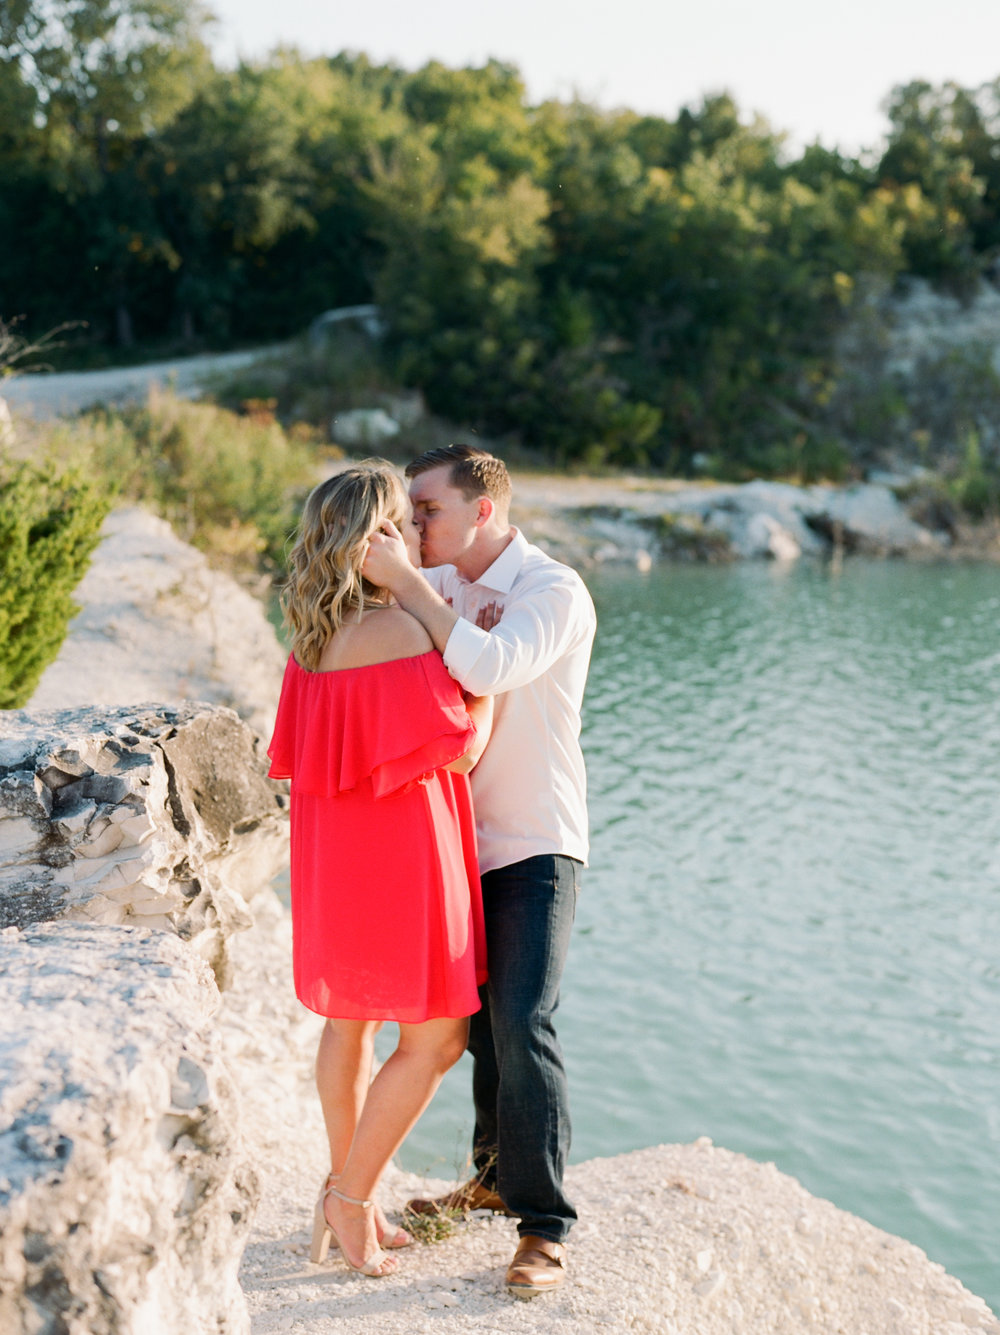 mckinney-quary-engagements-ar-photography-amanda-alex-213.jpg